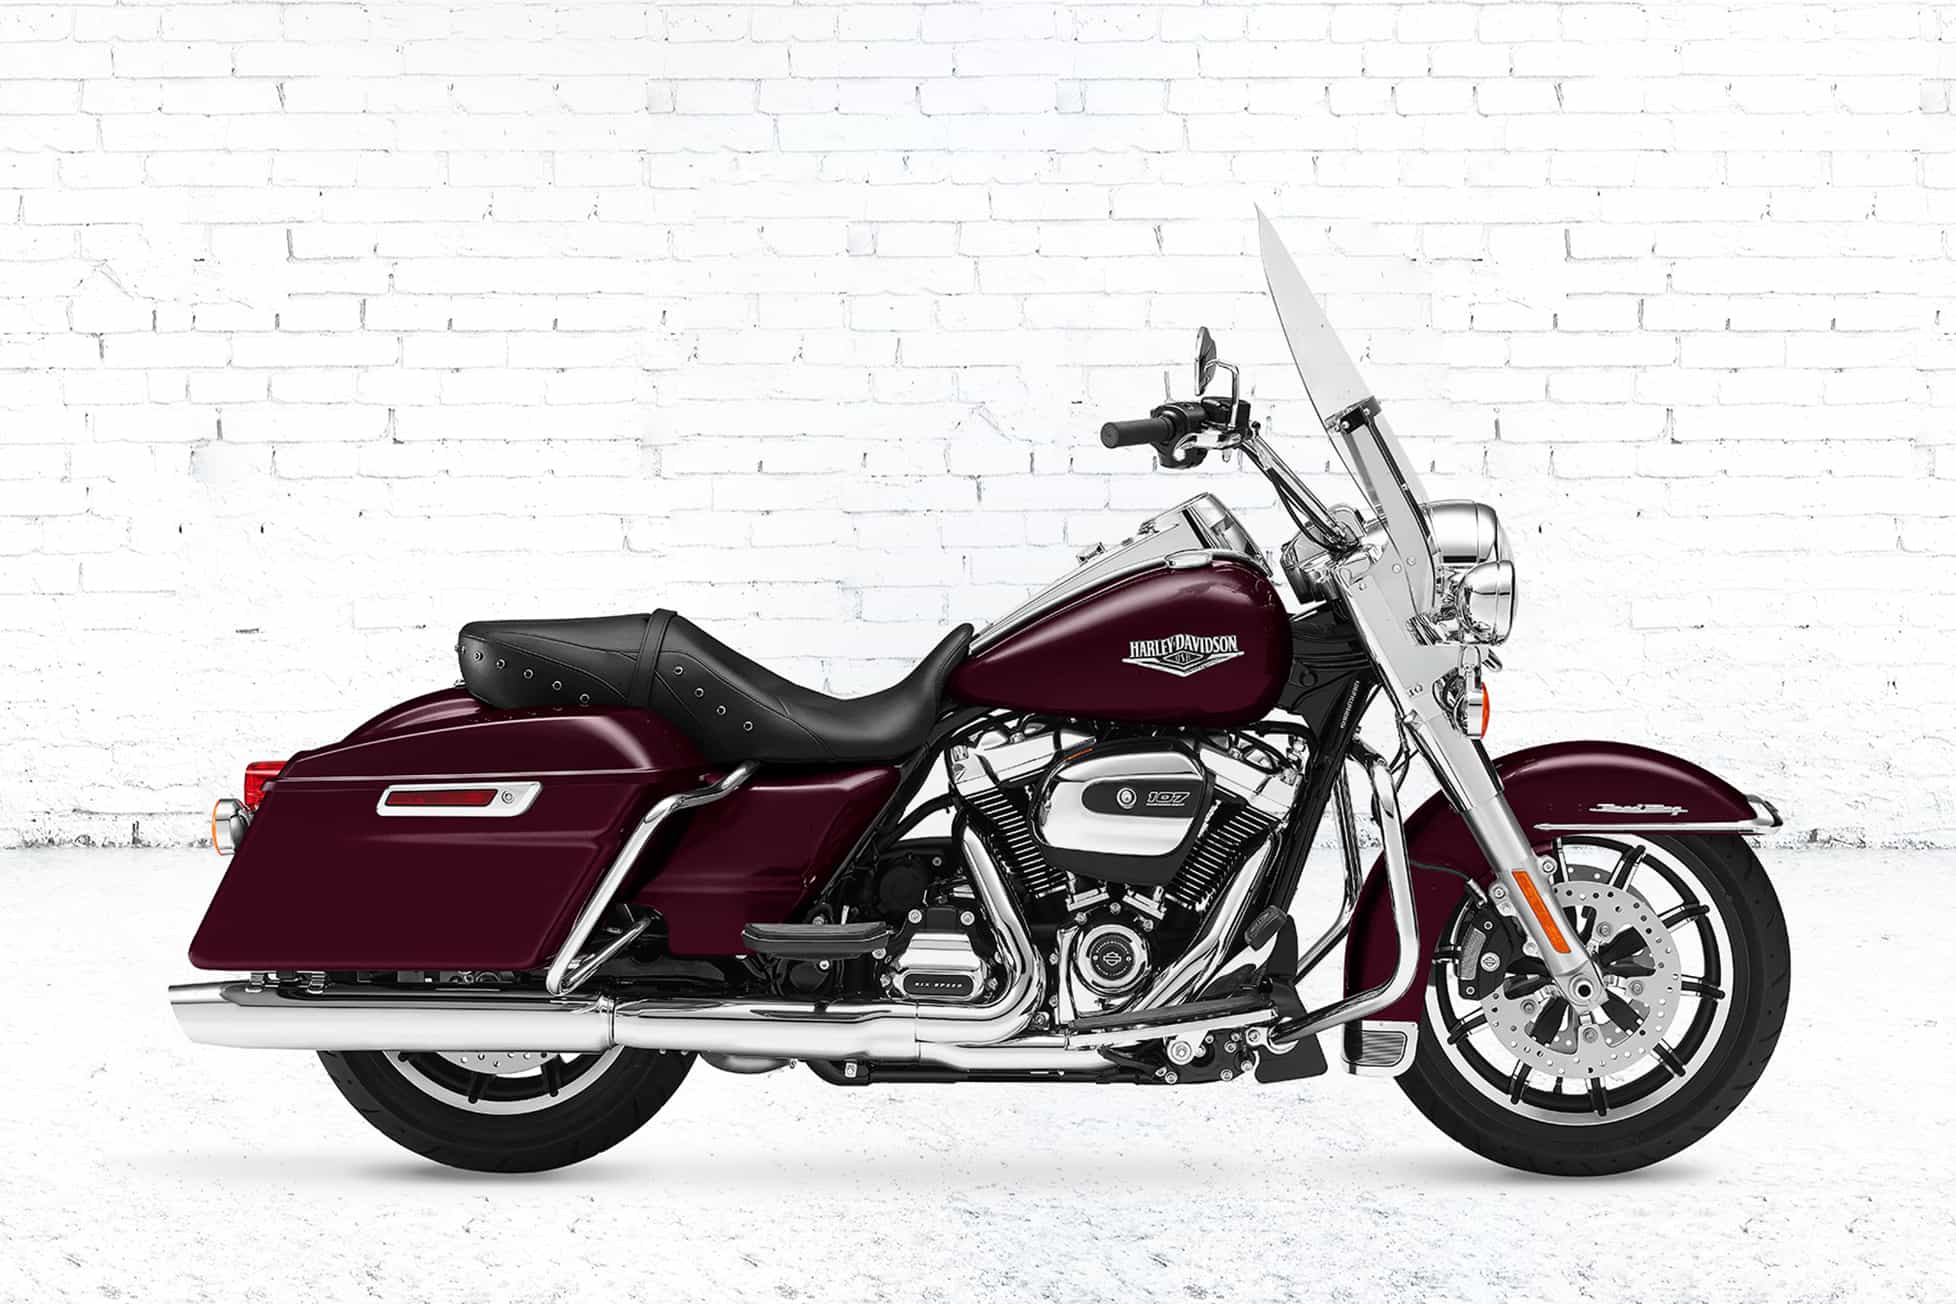 2018 touring road king specs pricing harley davidson usa rh harley davidson com 2001 harley davidson road king service manual pdf 2001 harley davidson road king owners manual